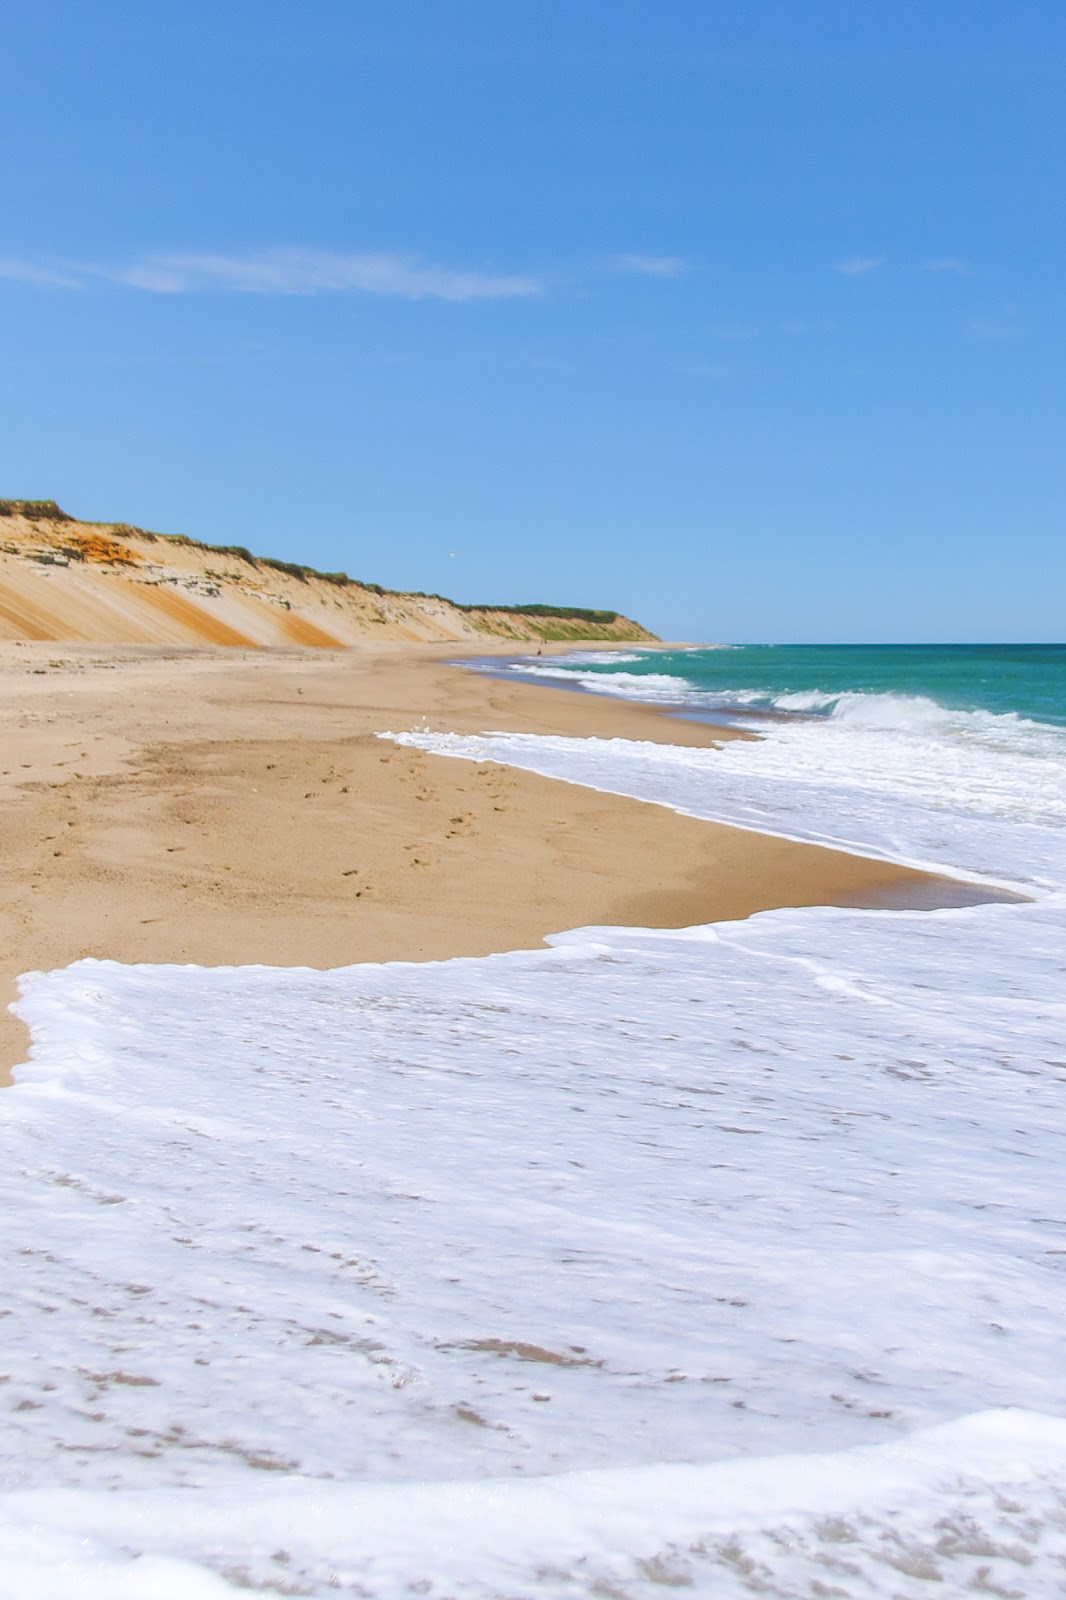 The Natural Beauty of the Cape Cod National Seashore